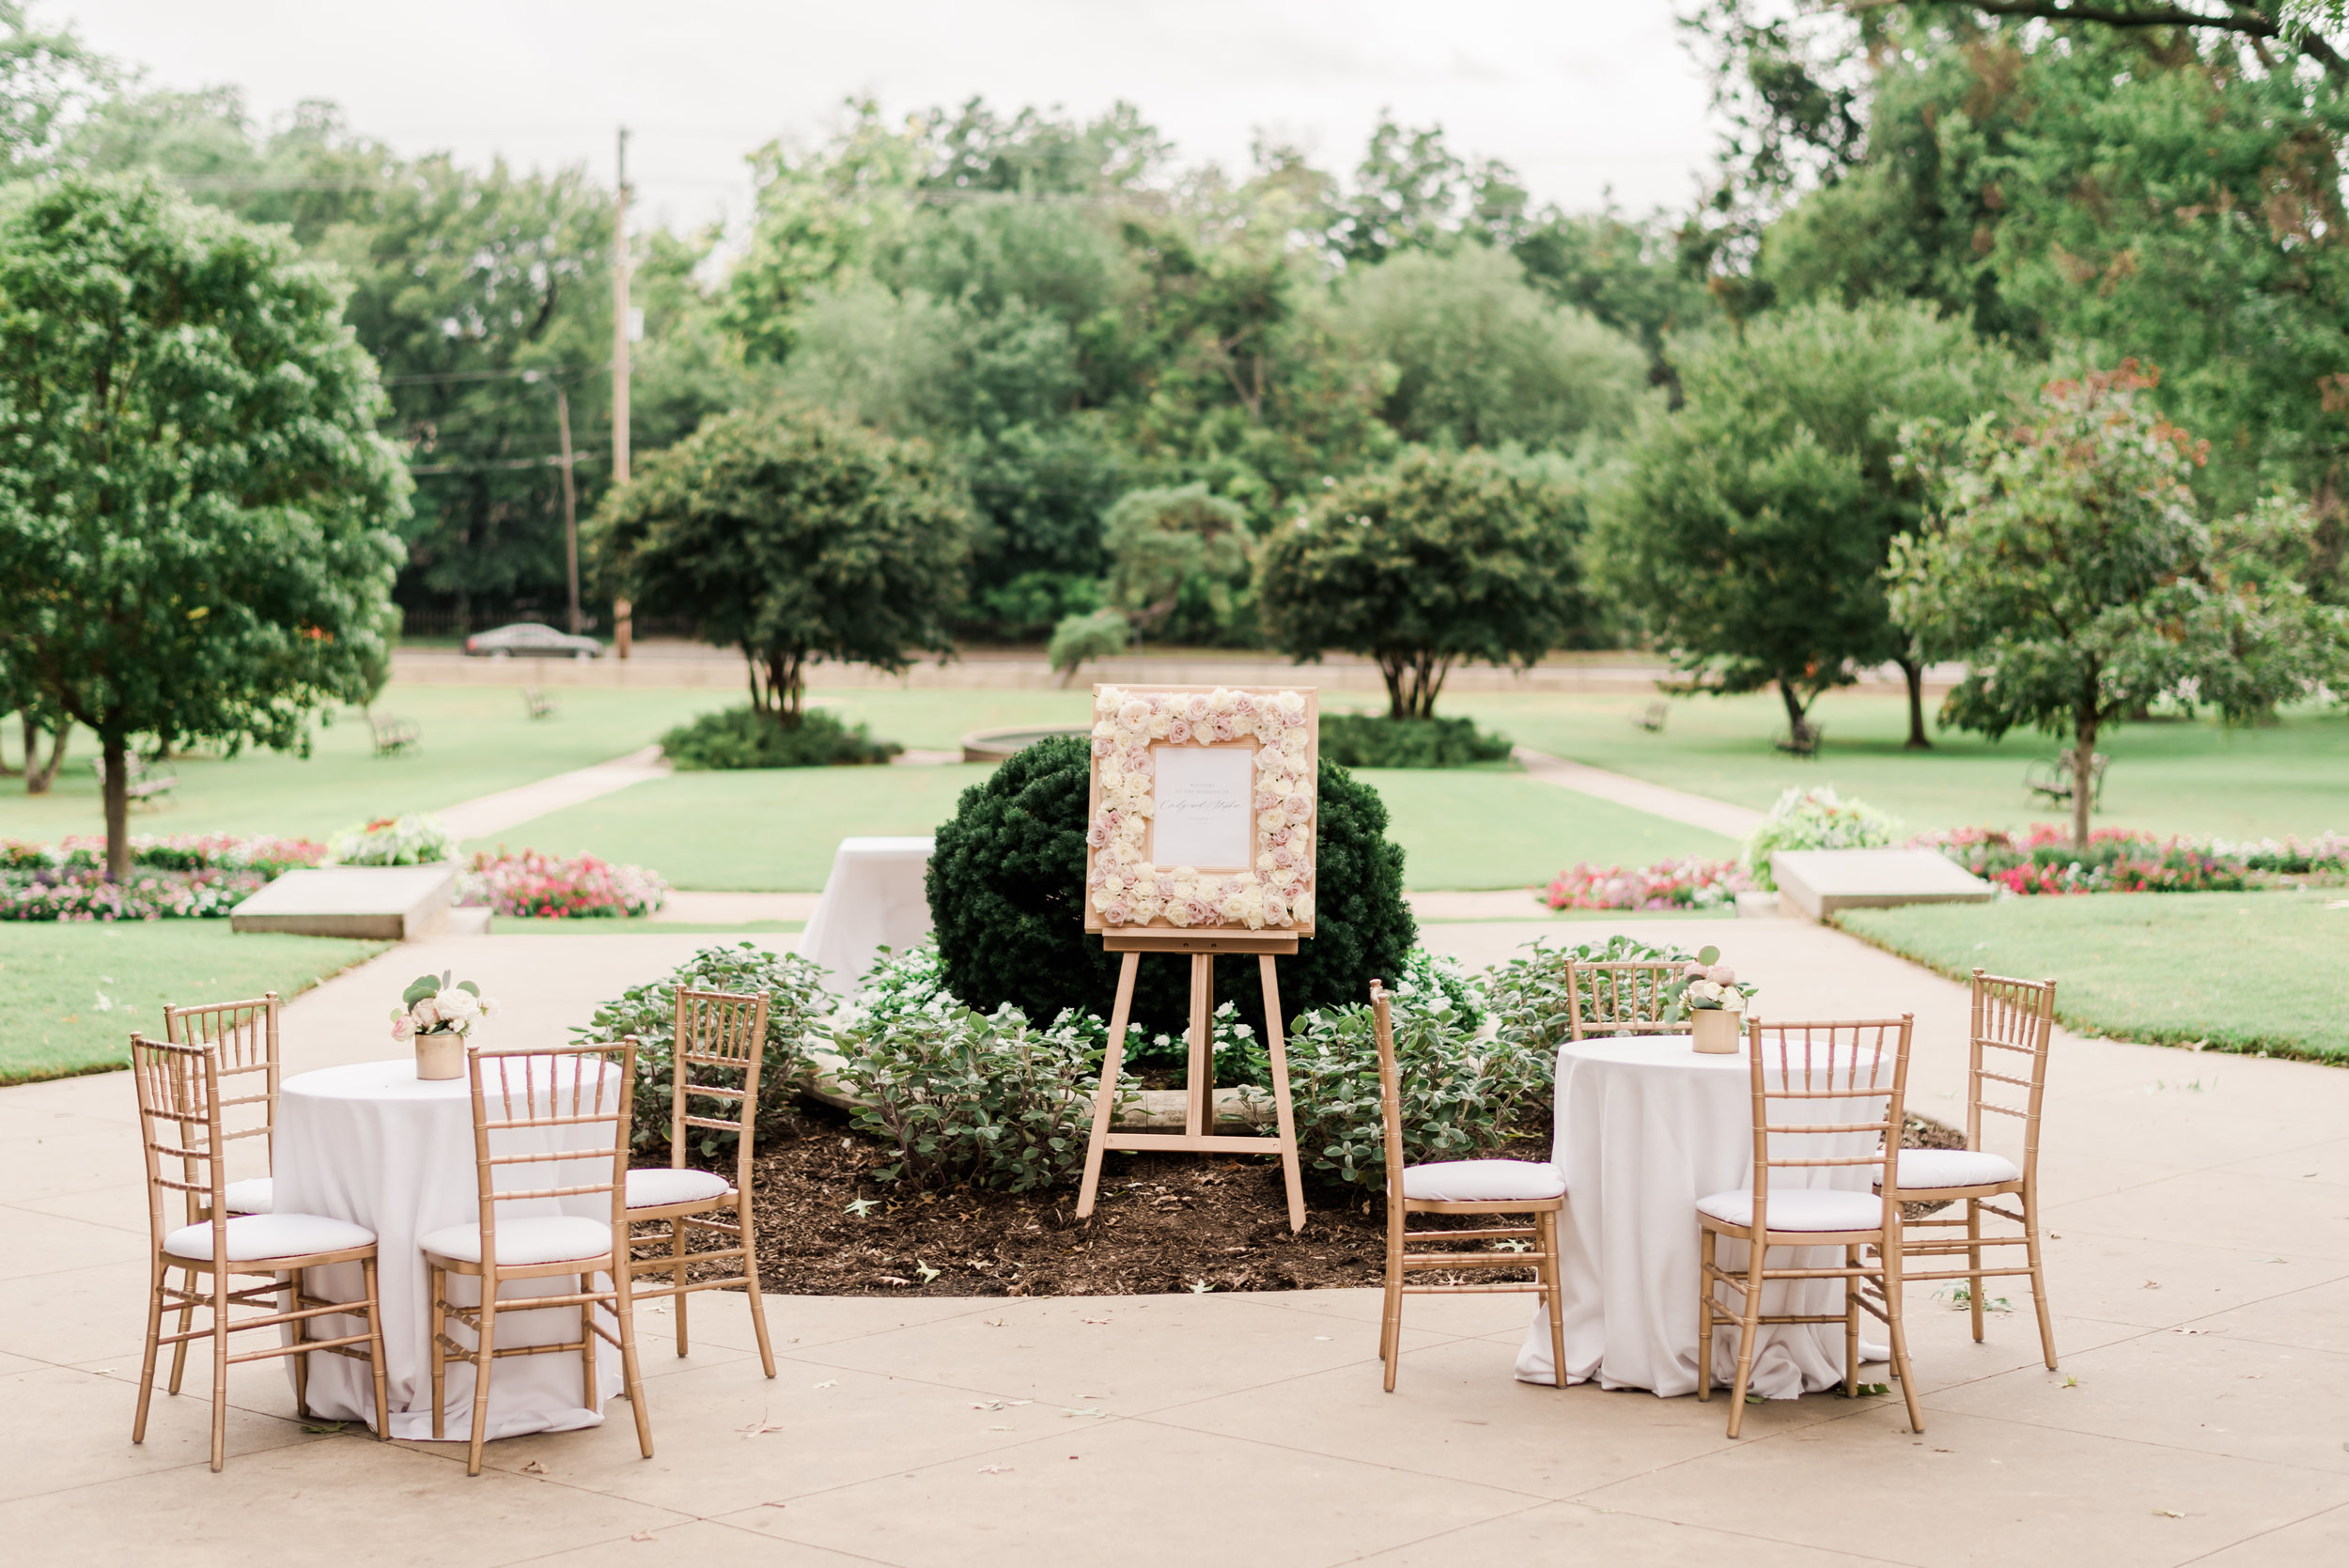 The Mansion at Woodward Park Tulsa Oklahoma Wedding_Valorie Darling Photography-6869.jpg